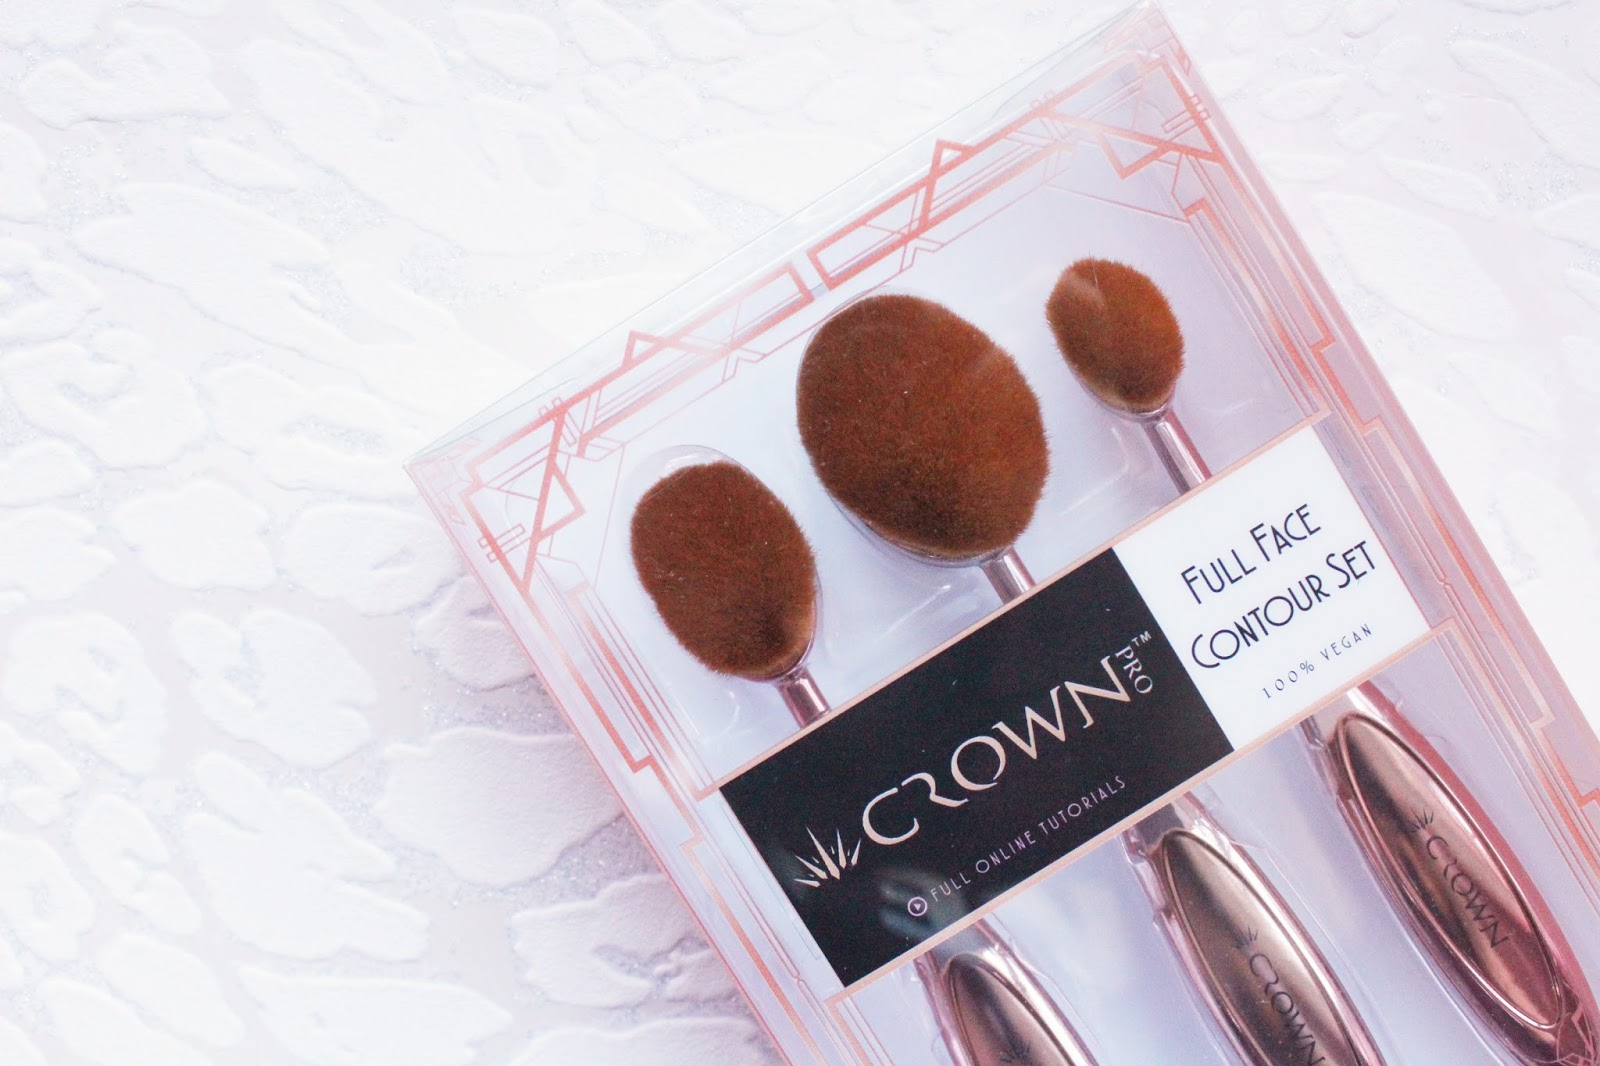 Crown Brush Rose Gold Full Face Contour Set